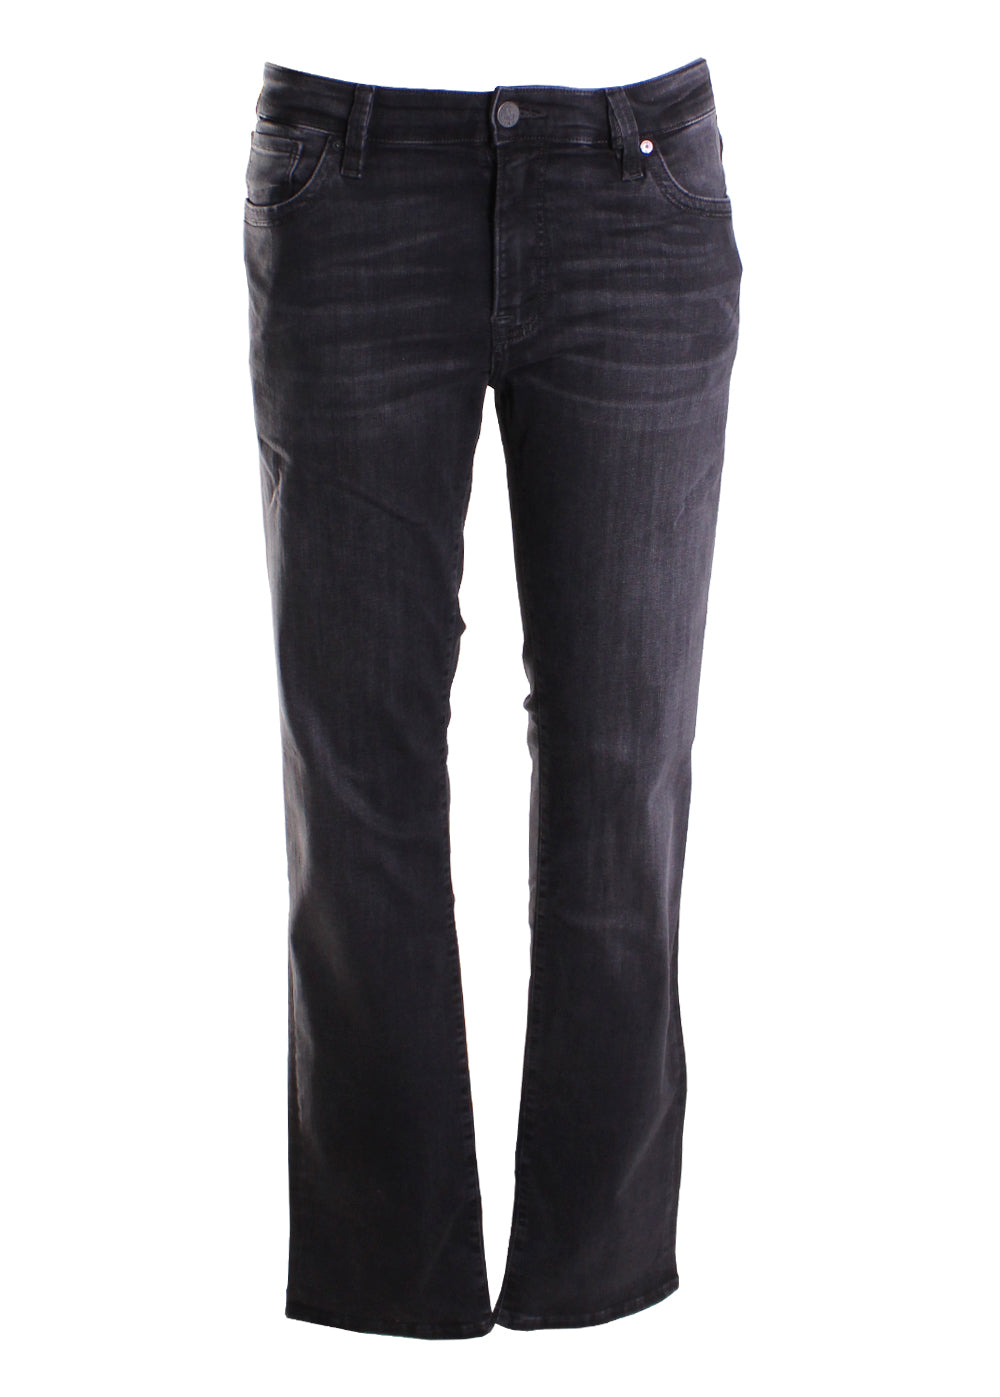 34 Heritage Courage Straight Leg Jeans in Coal Soft Comfort